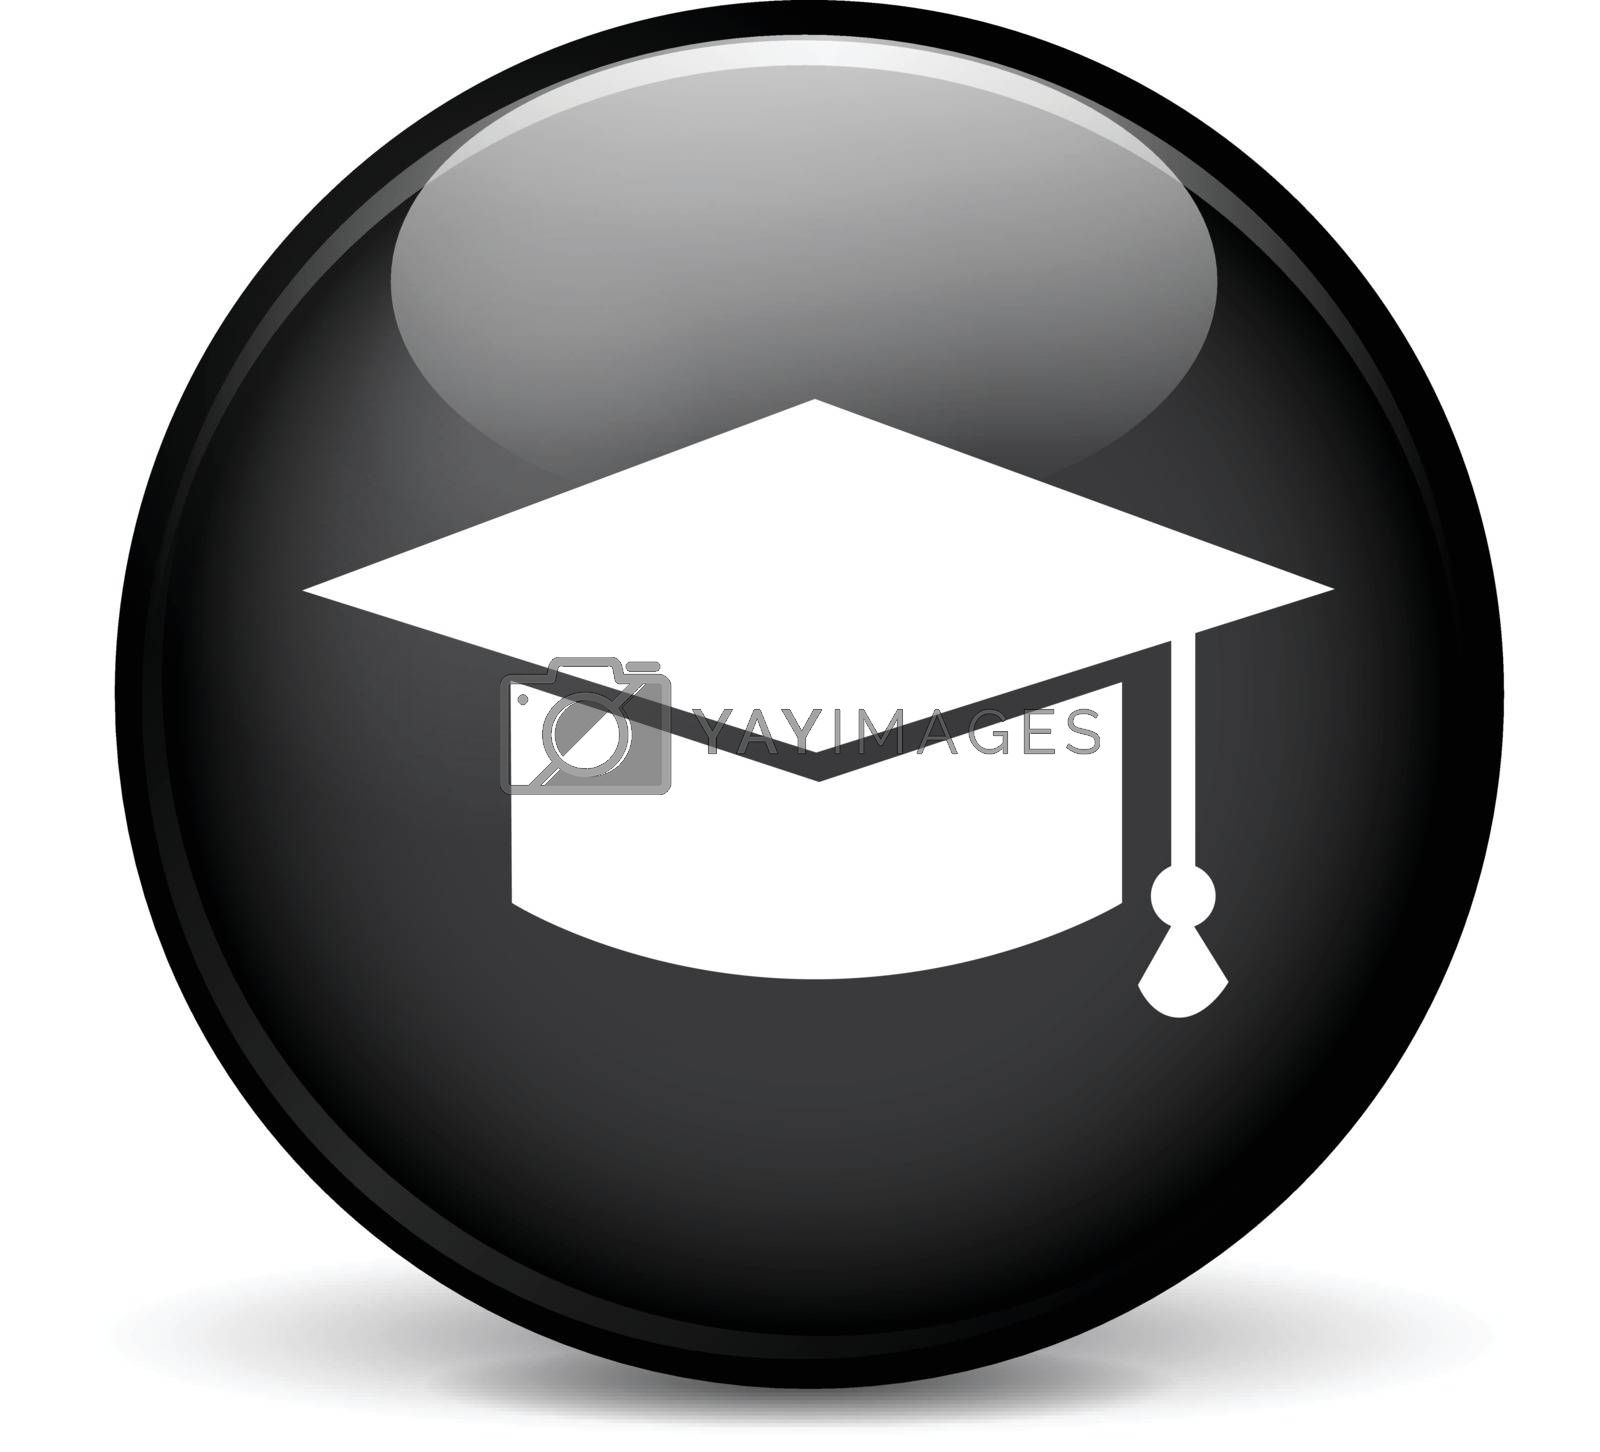 Illustration of education modern design black sphere icon